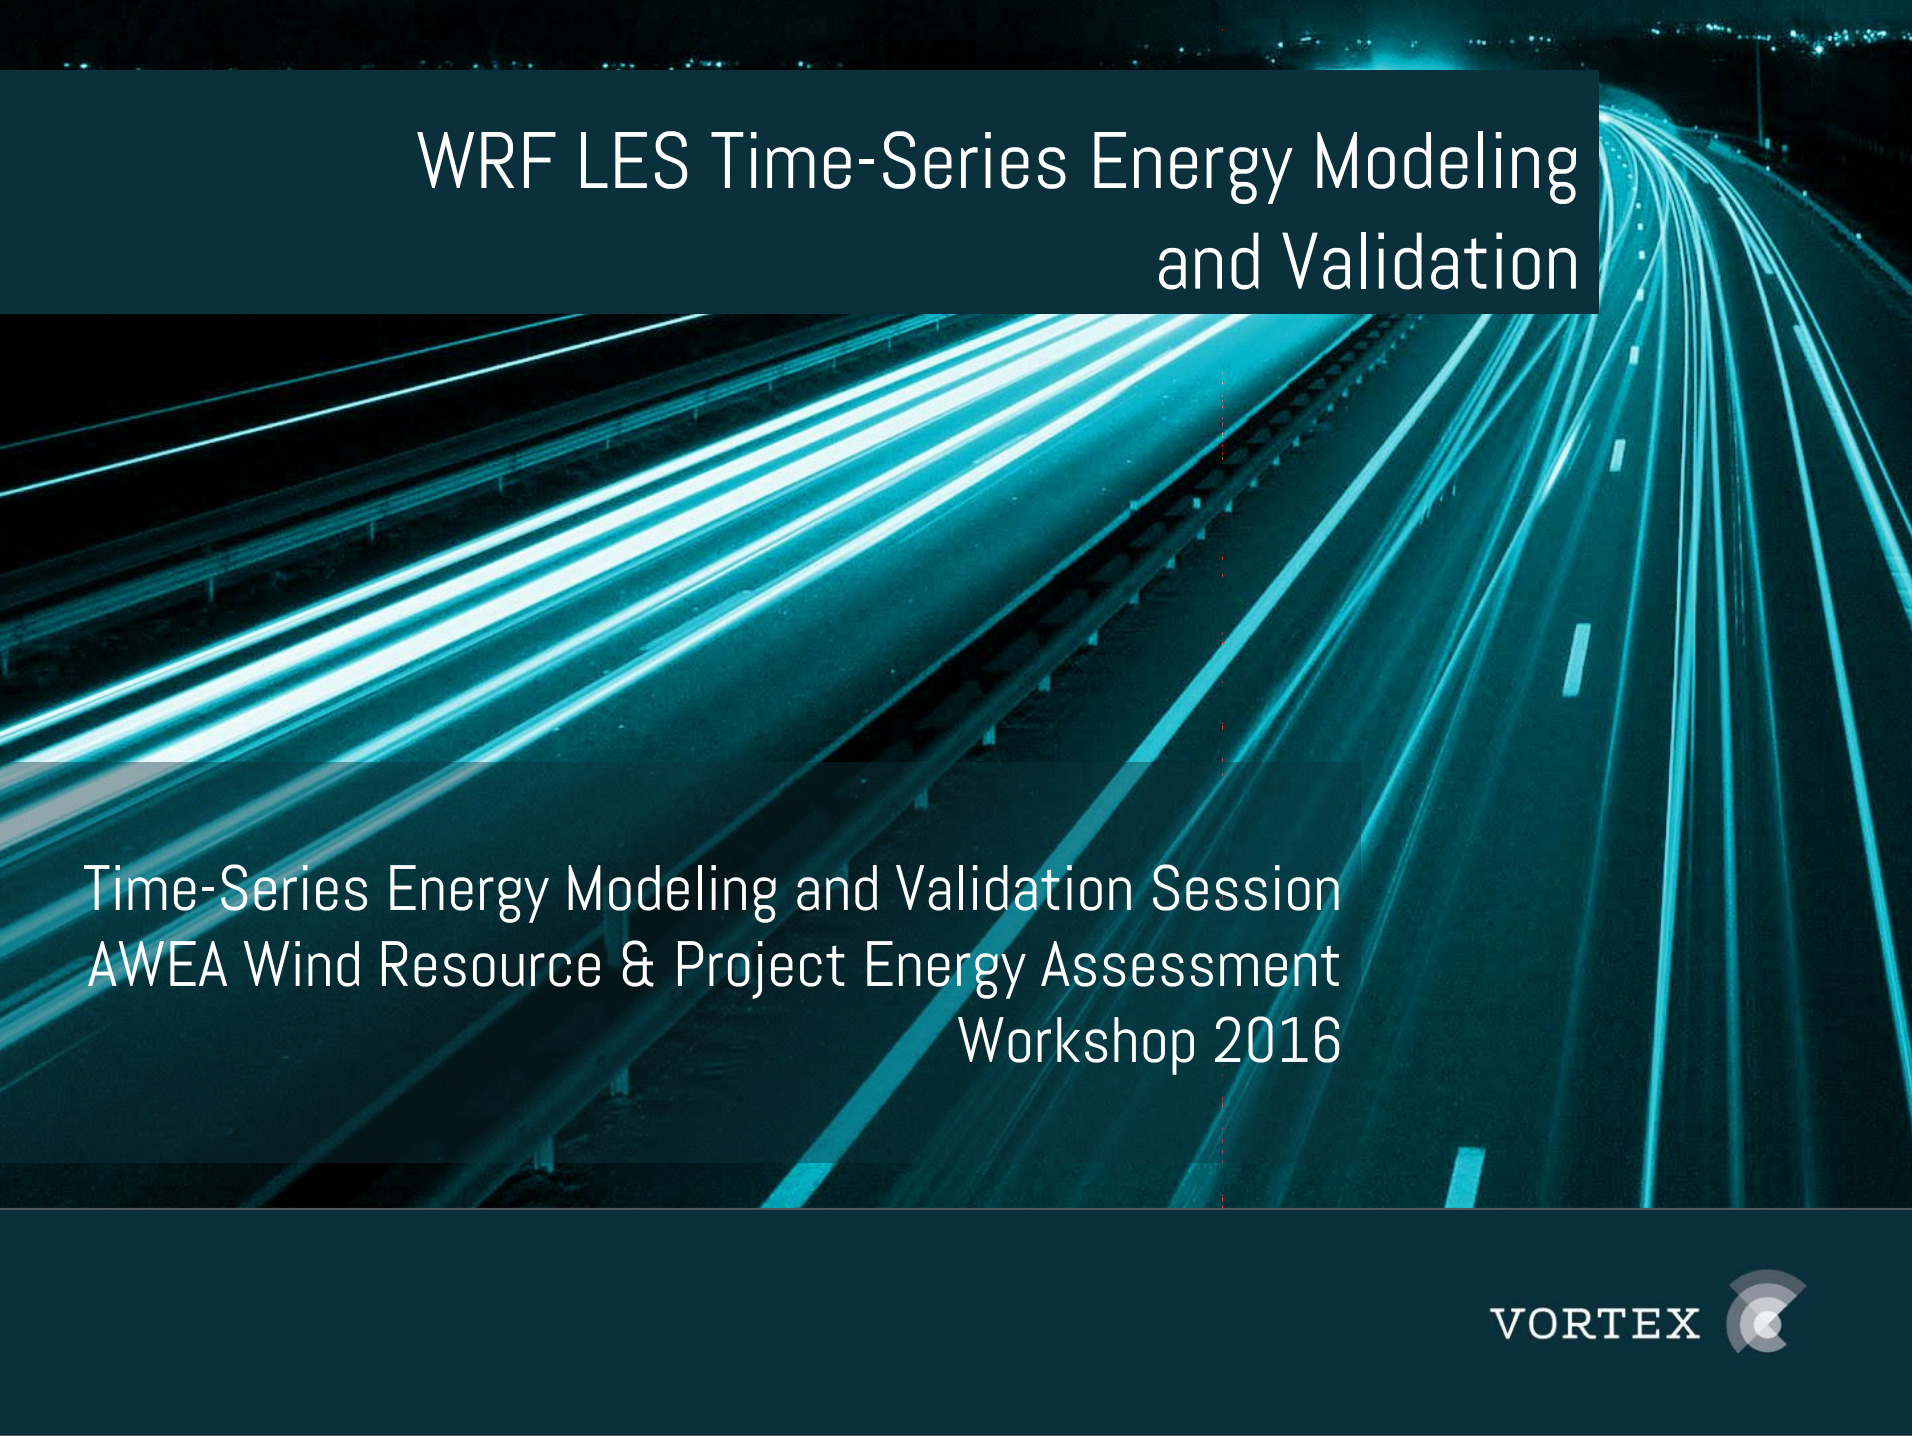 WRF LES TIME-SERIES ENERGY MODELING AND VALIDATION - VORTEX